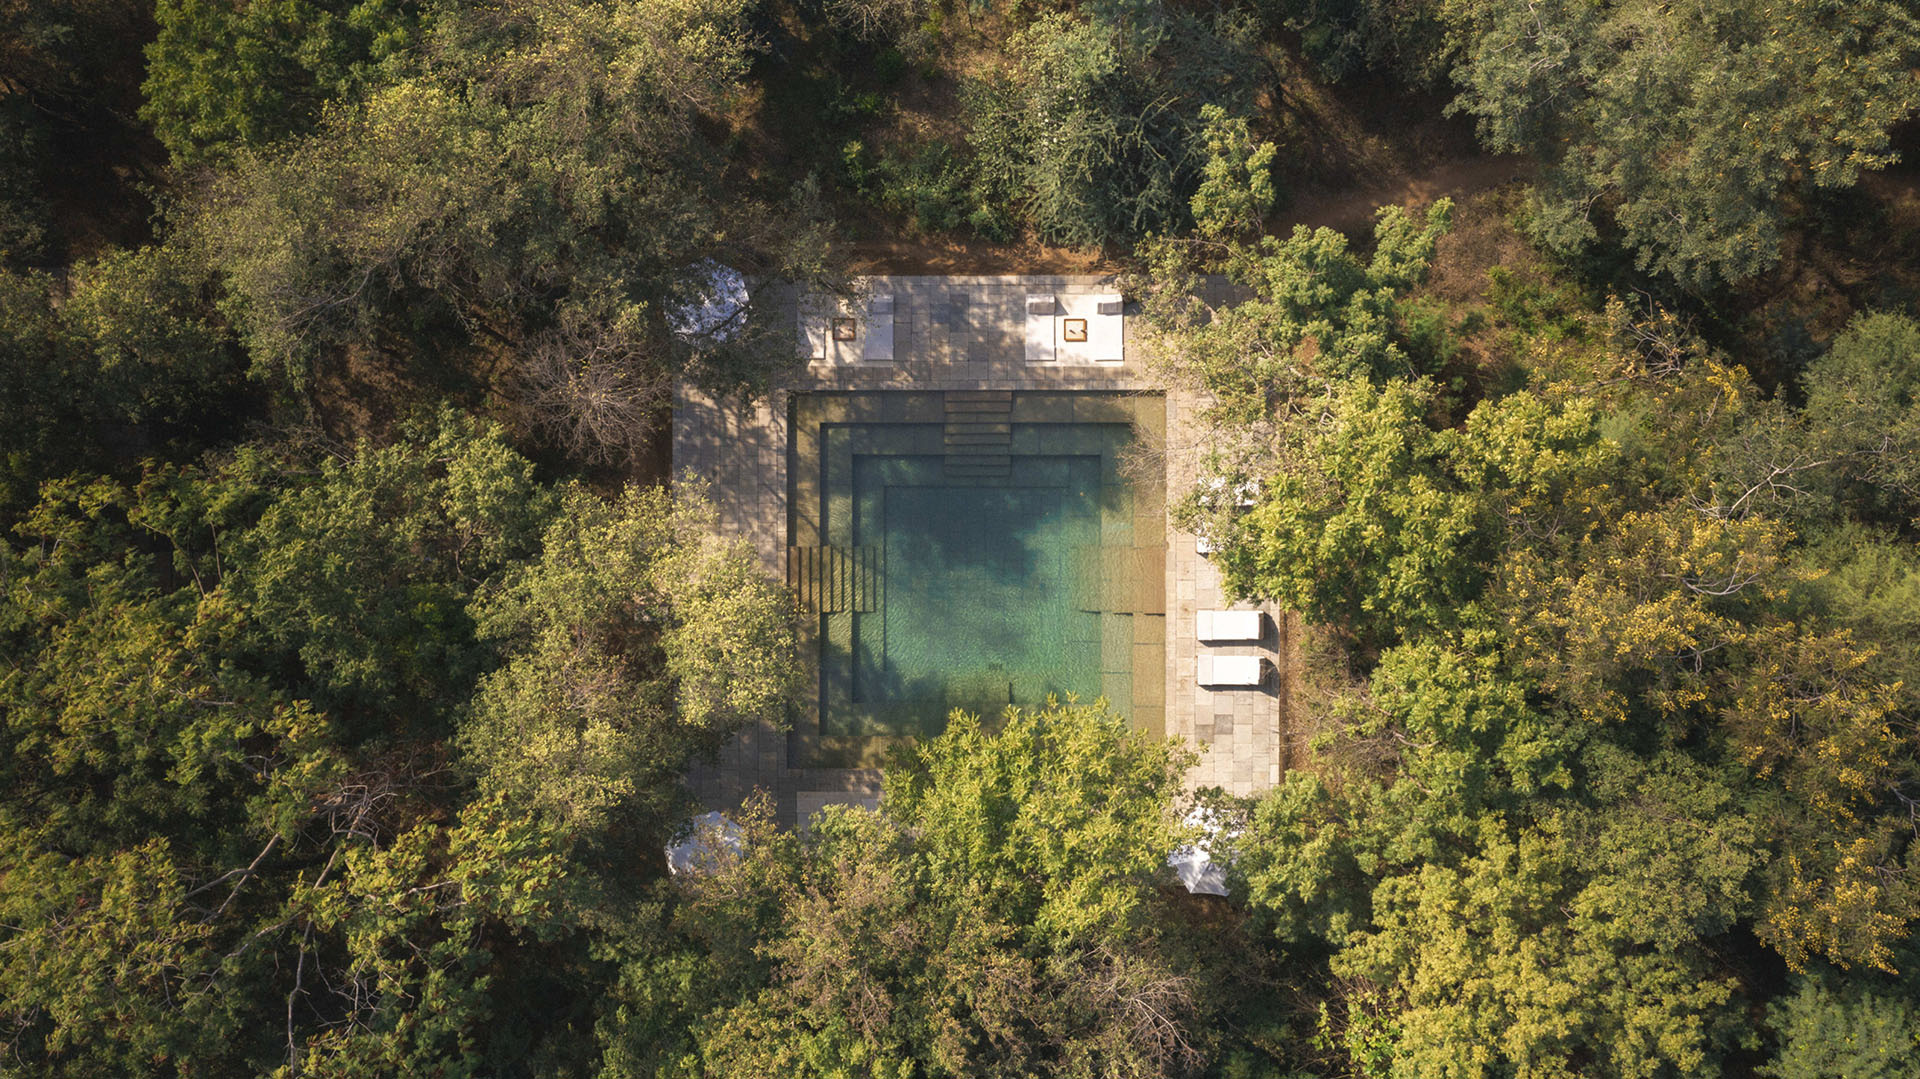 Aerial View of the pool at the Aman-i-khas, Ranthambore, Rajasthan |Glamping| Resorts | STIRworld